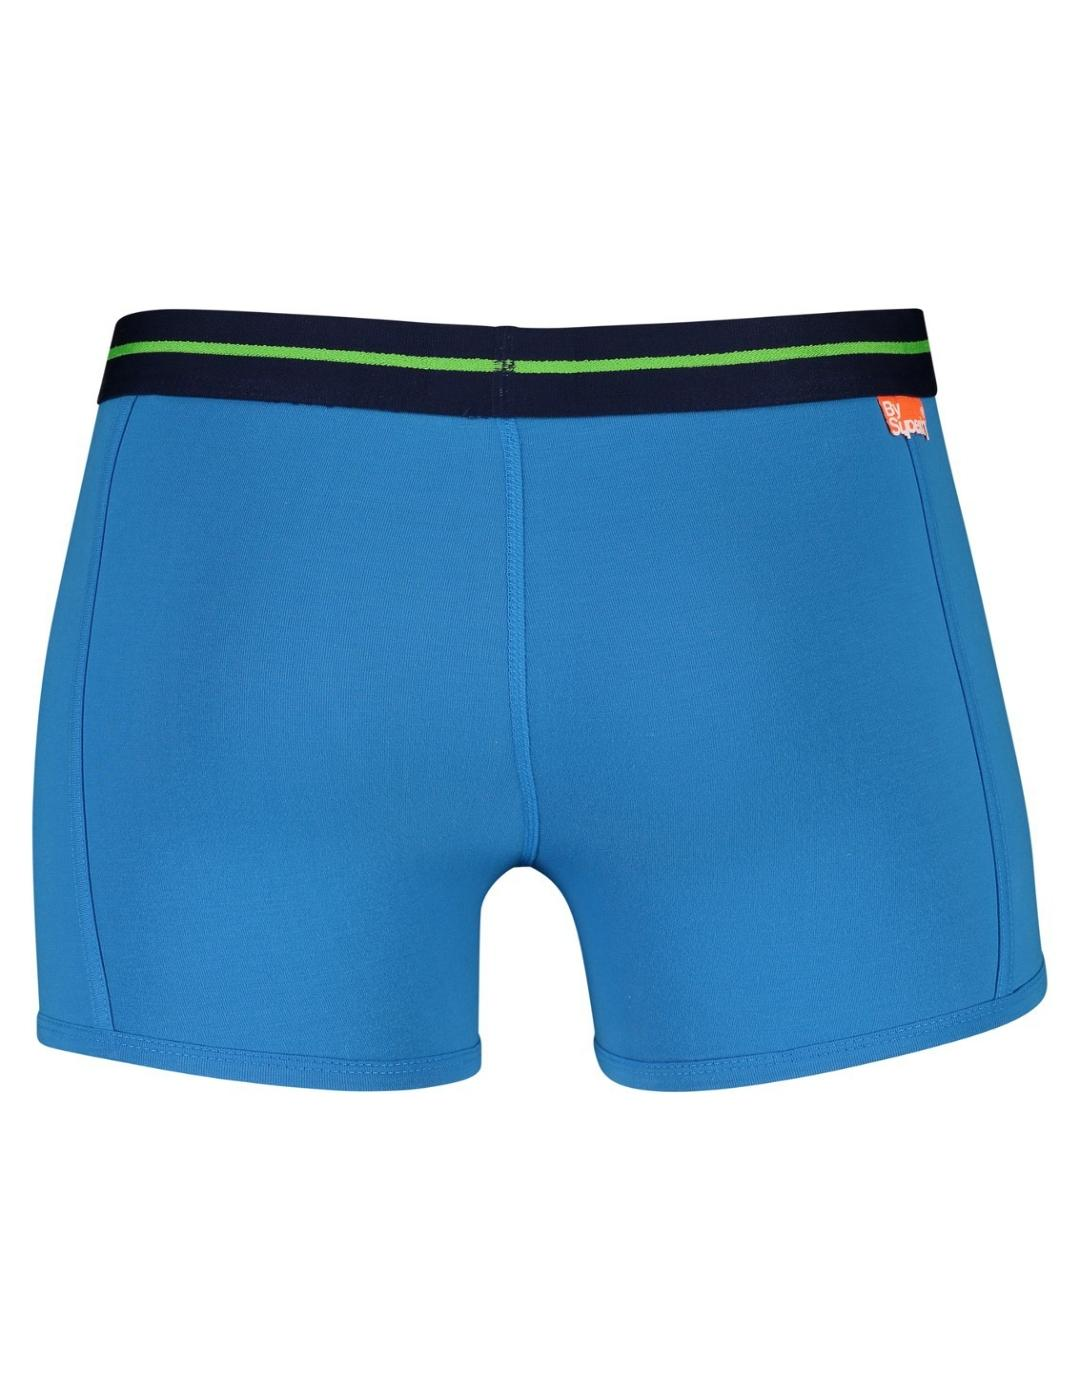 SPORT BOXER DOUBLE PACK CAL CACTUS/BLUE-W